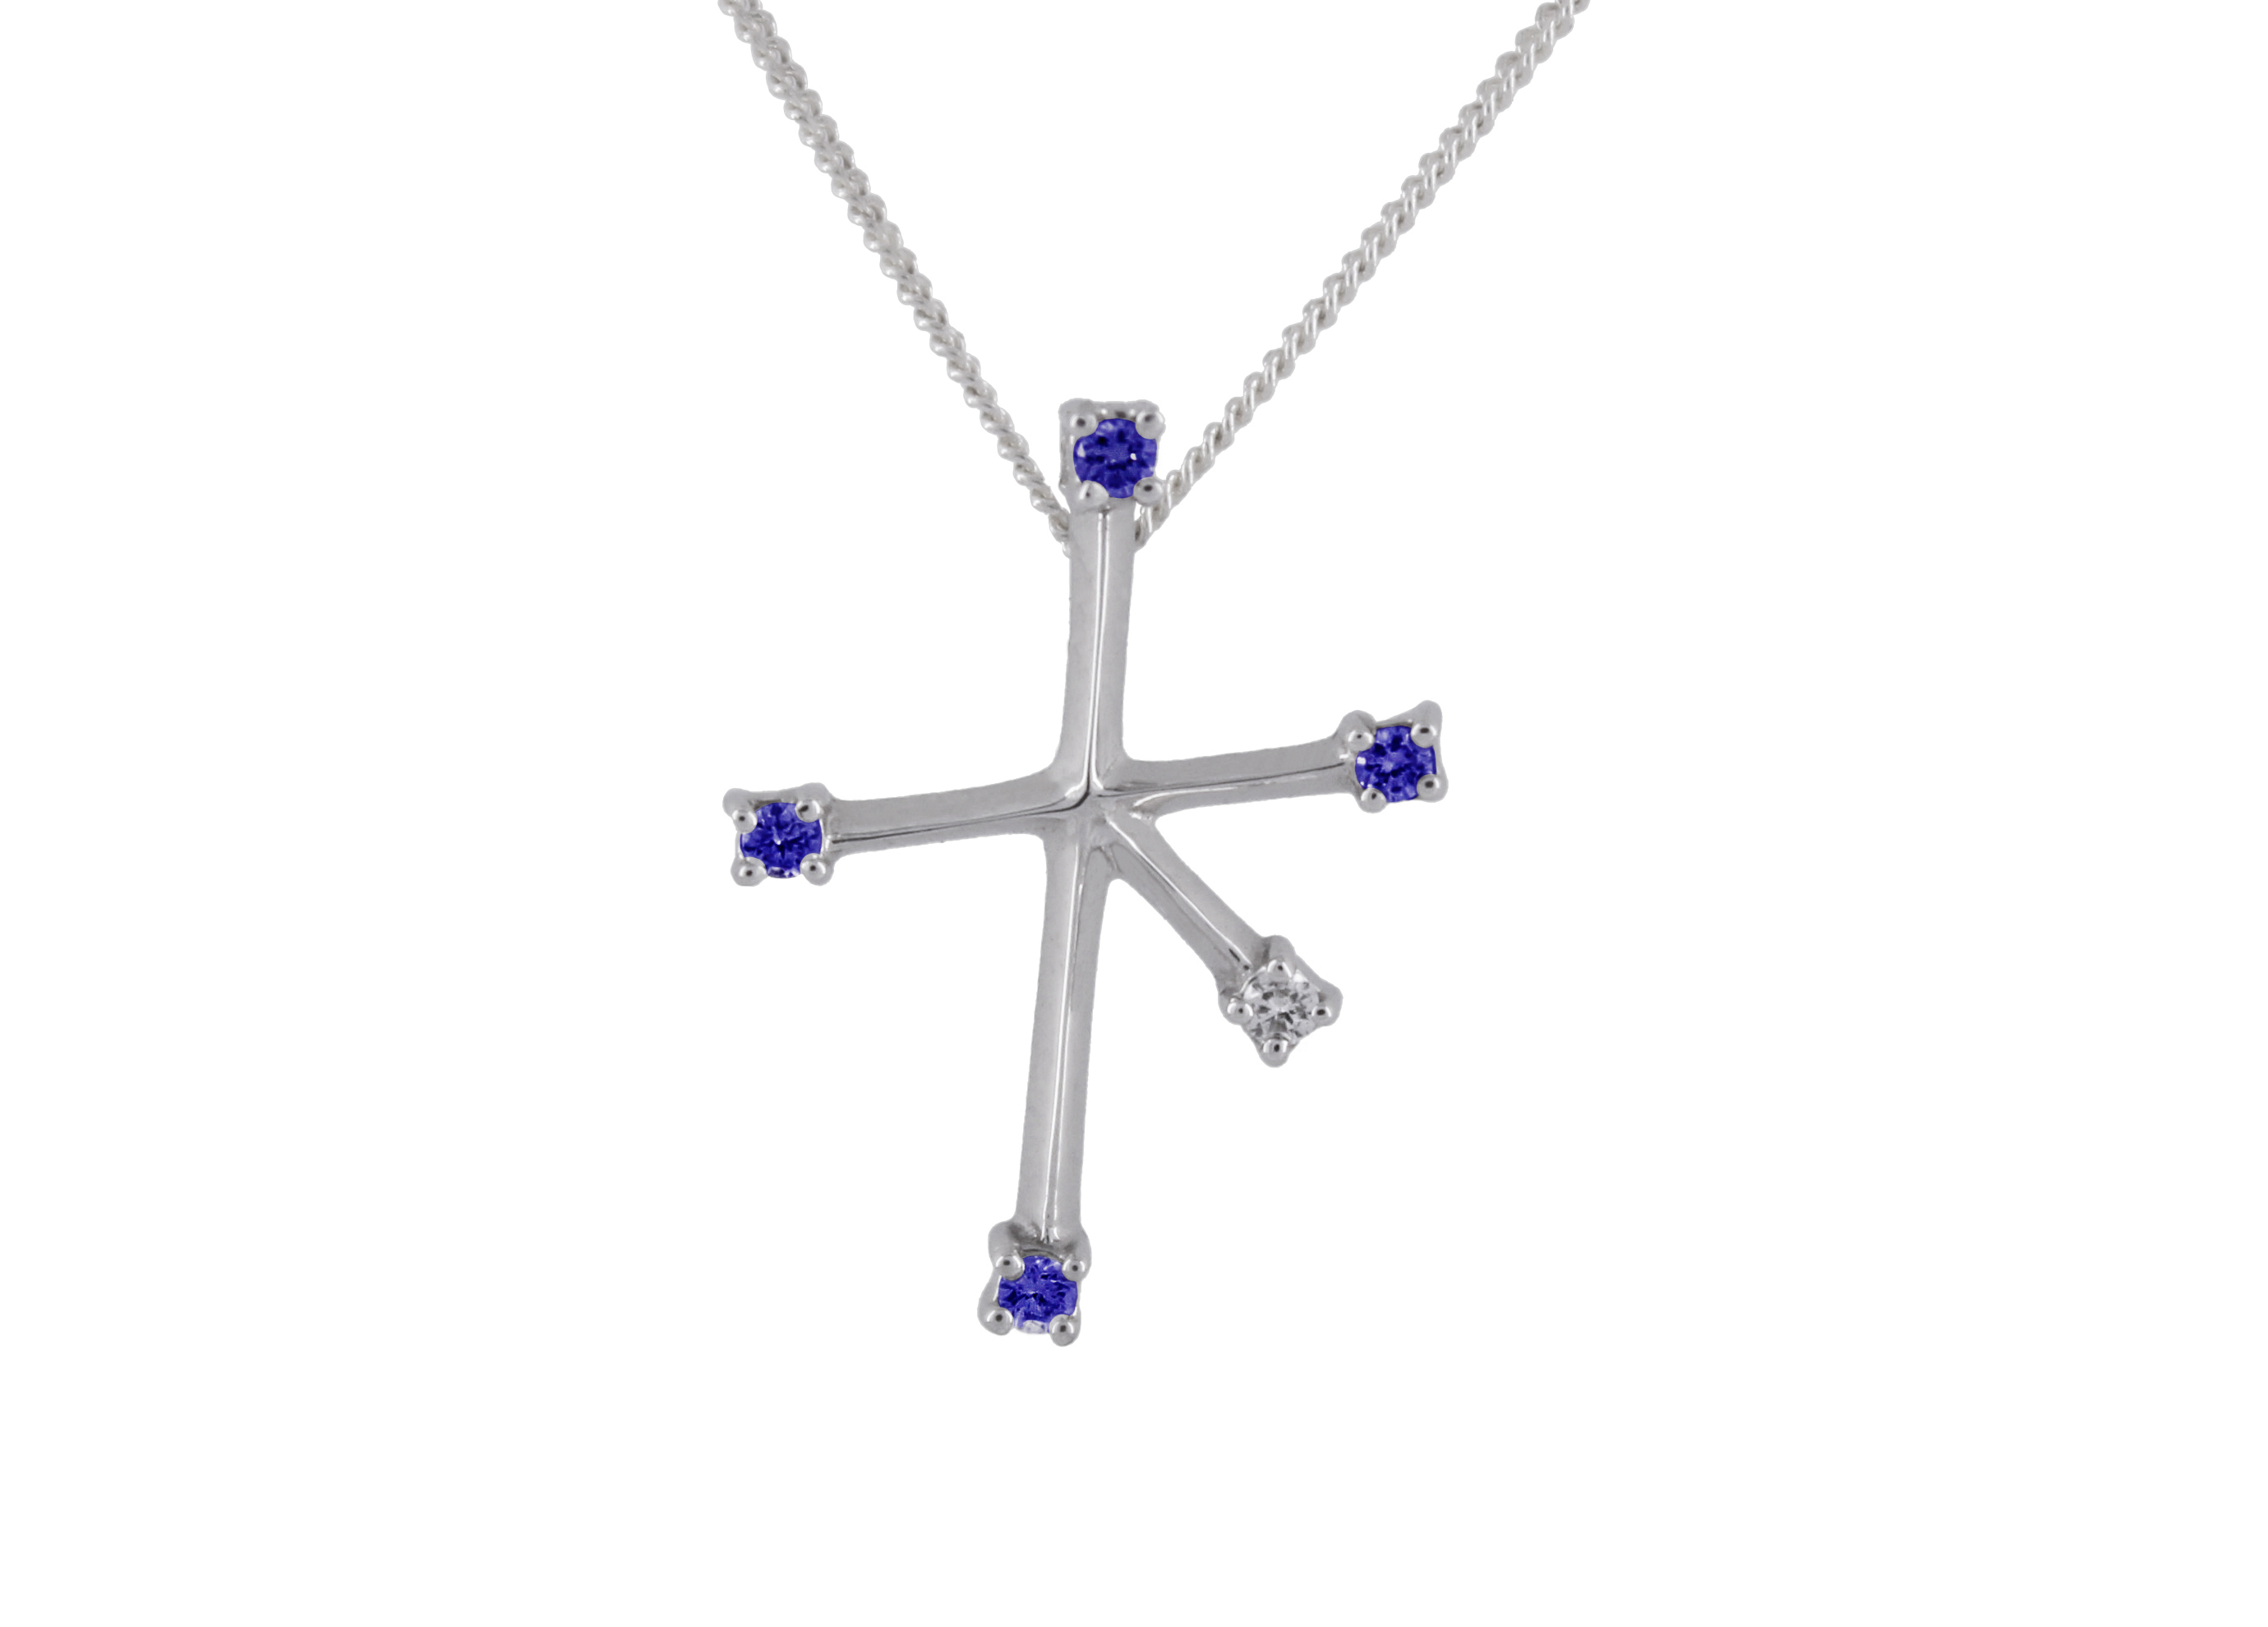 Southern Cross with Sapphires & Diamonds in 9ct White Gold